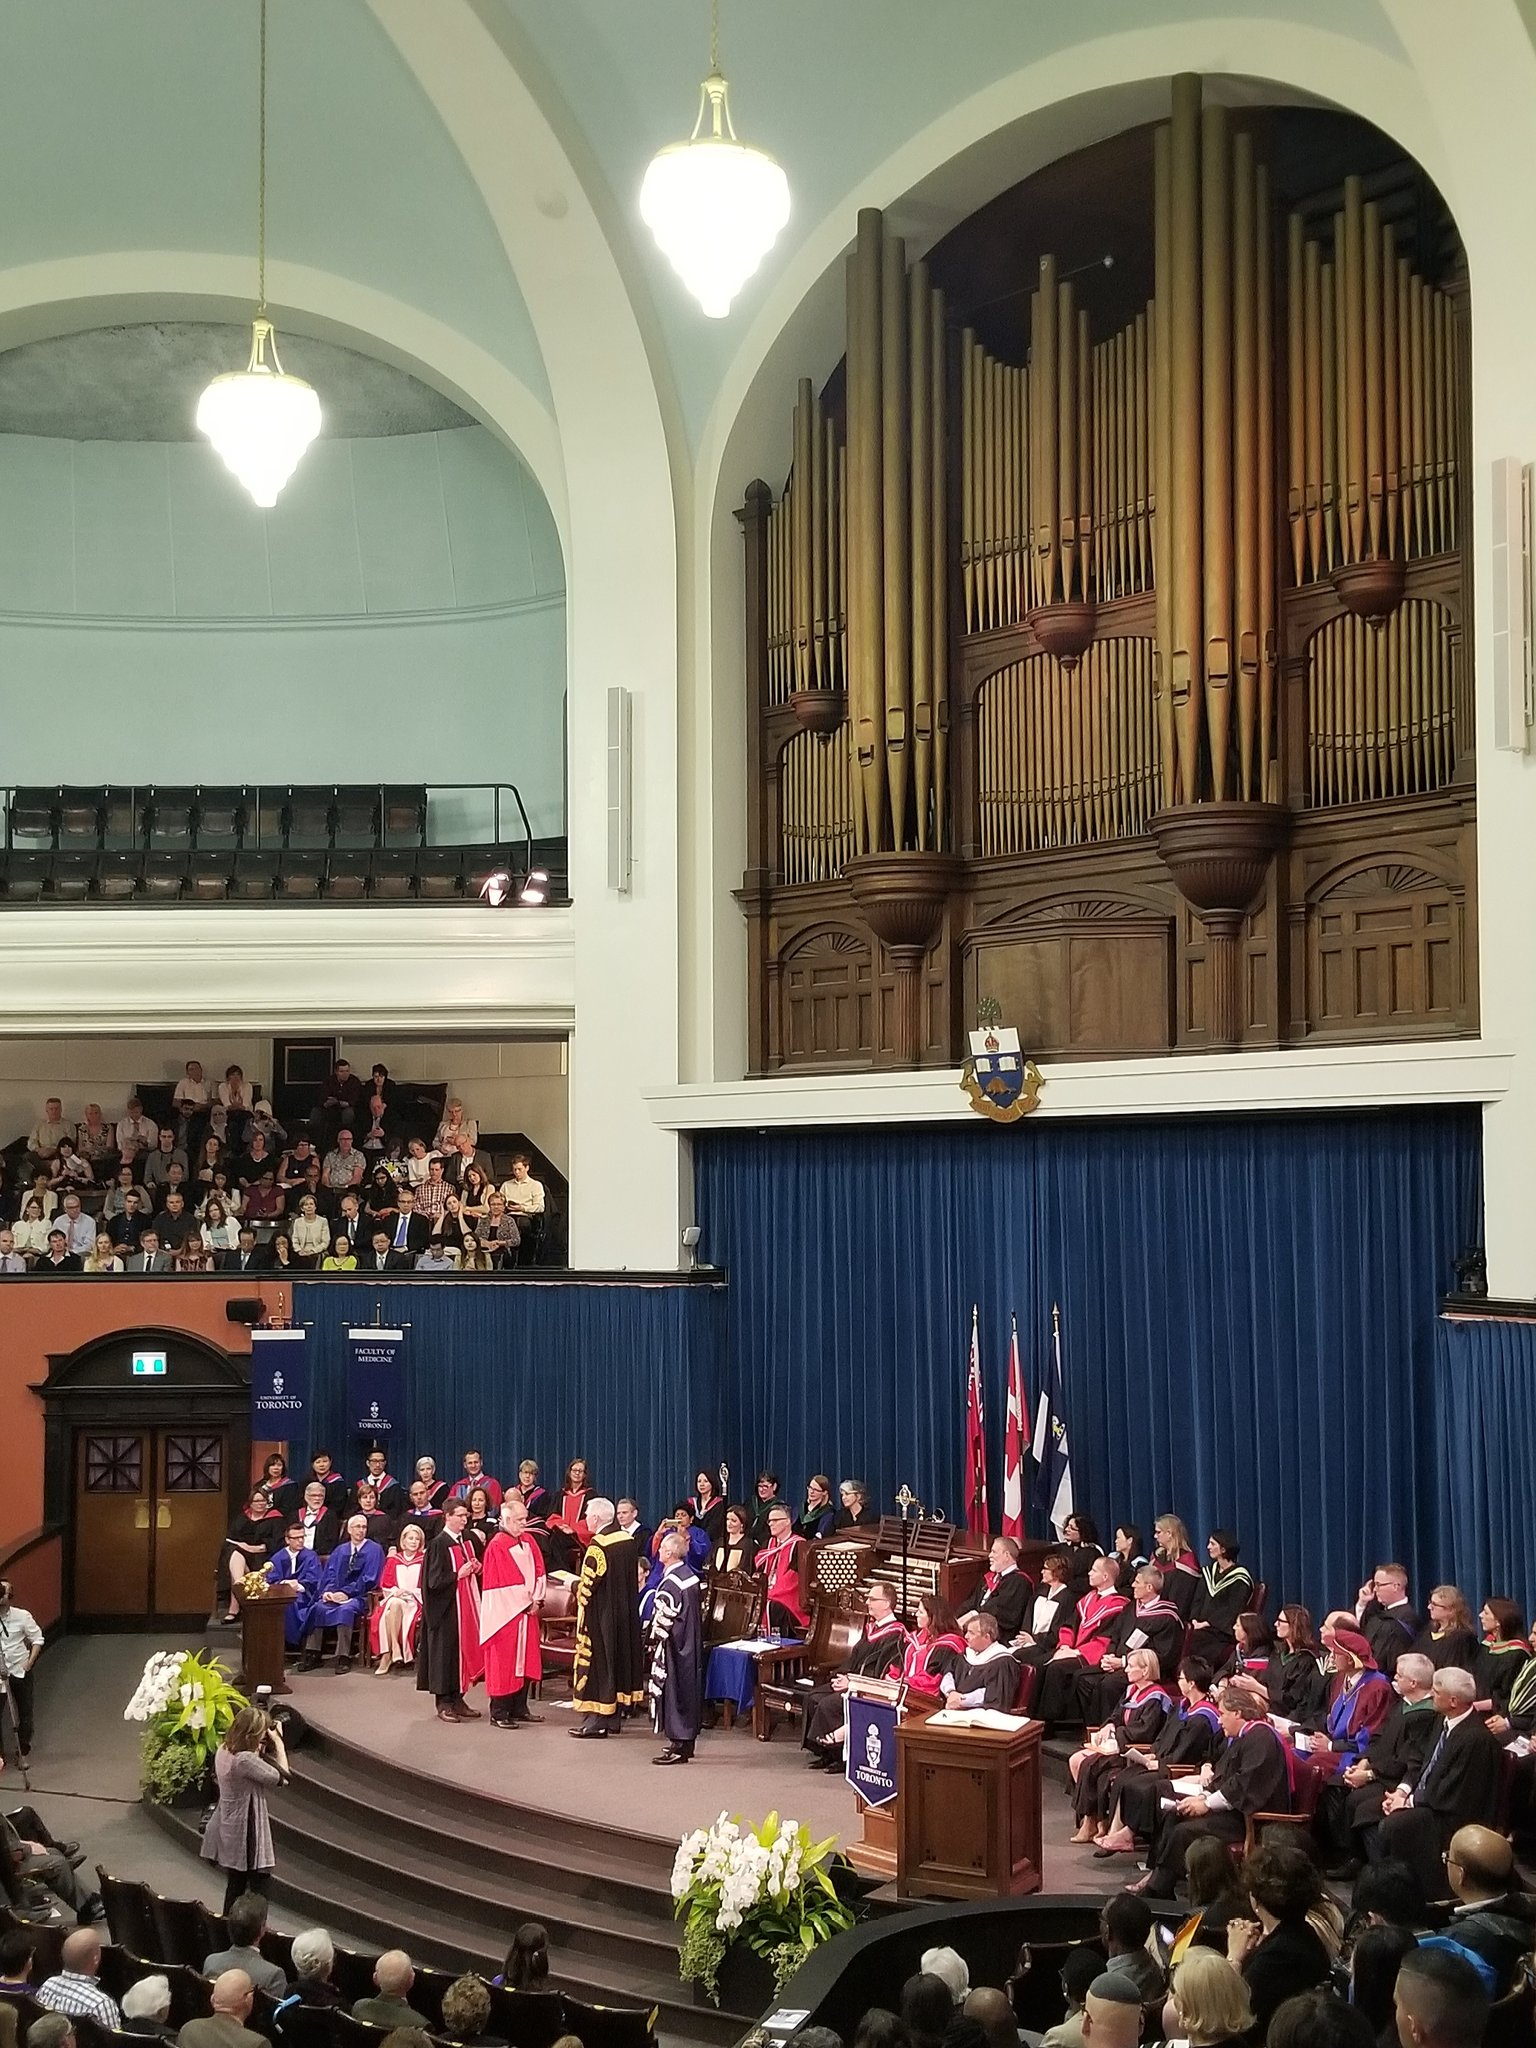 So lucky to attend @uoftmedicine  convocation & see @picardonhealth receive hon degree & speak to the importance of listening in healthcare https://t.co/gtqSIXFP5F